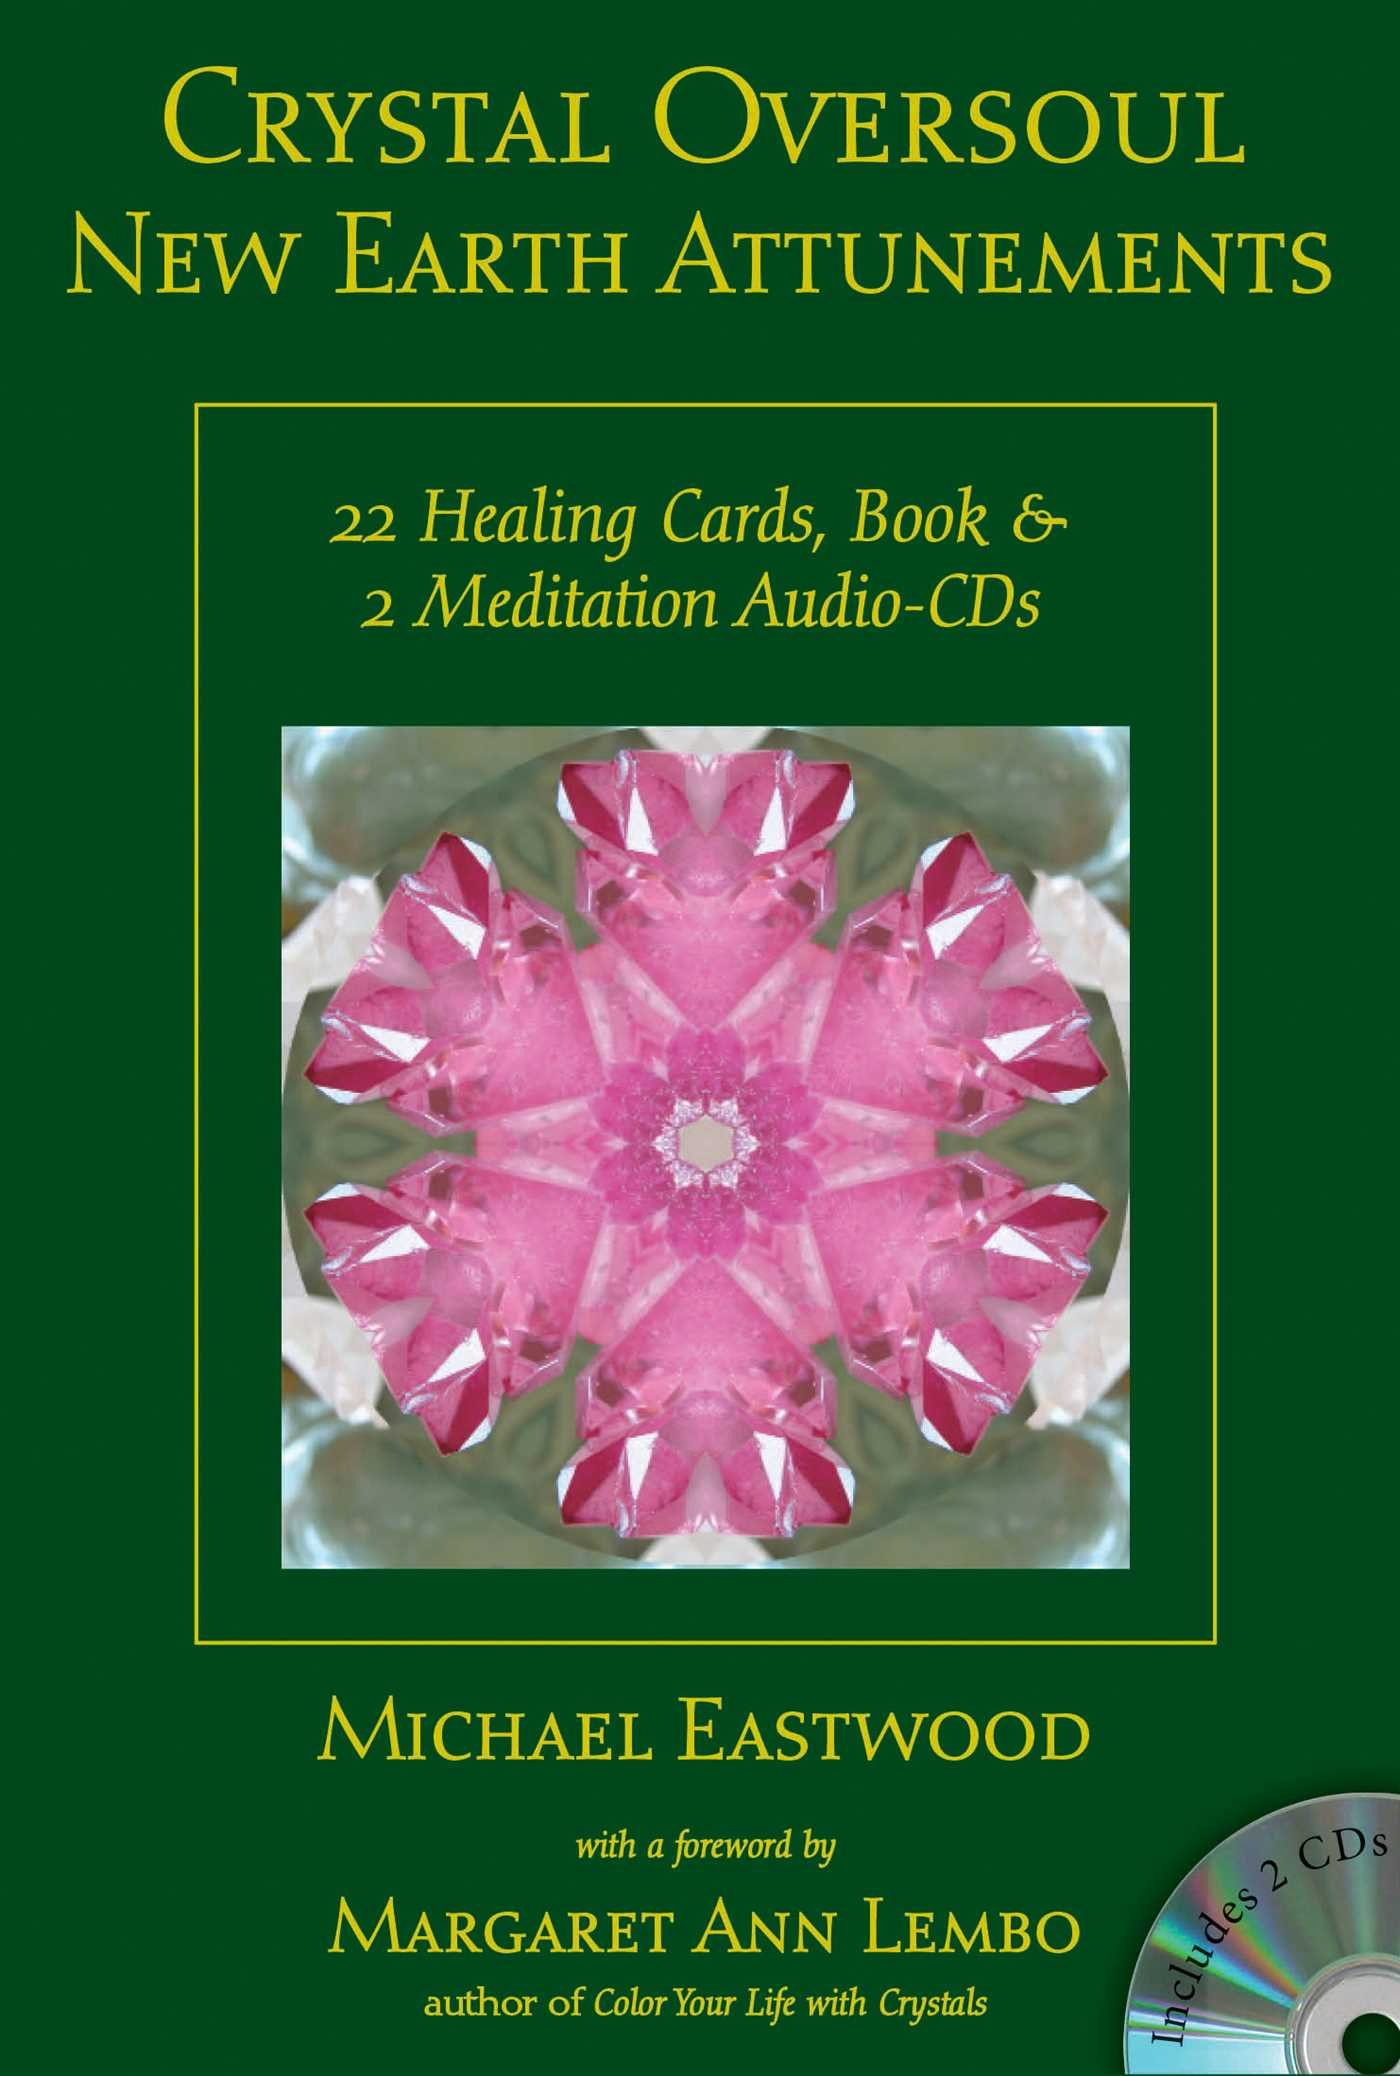 Crystal Oversoul New Earth Attunements: 22 Healing Cards, Book, & 2 Meditation Audio CDs (Crystal Oversoul Attunements)